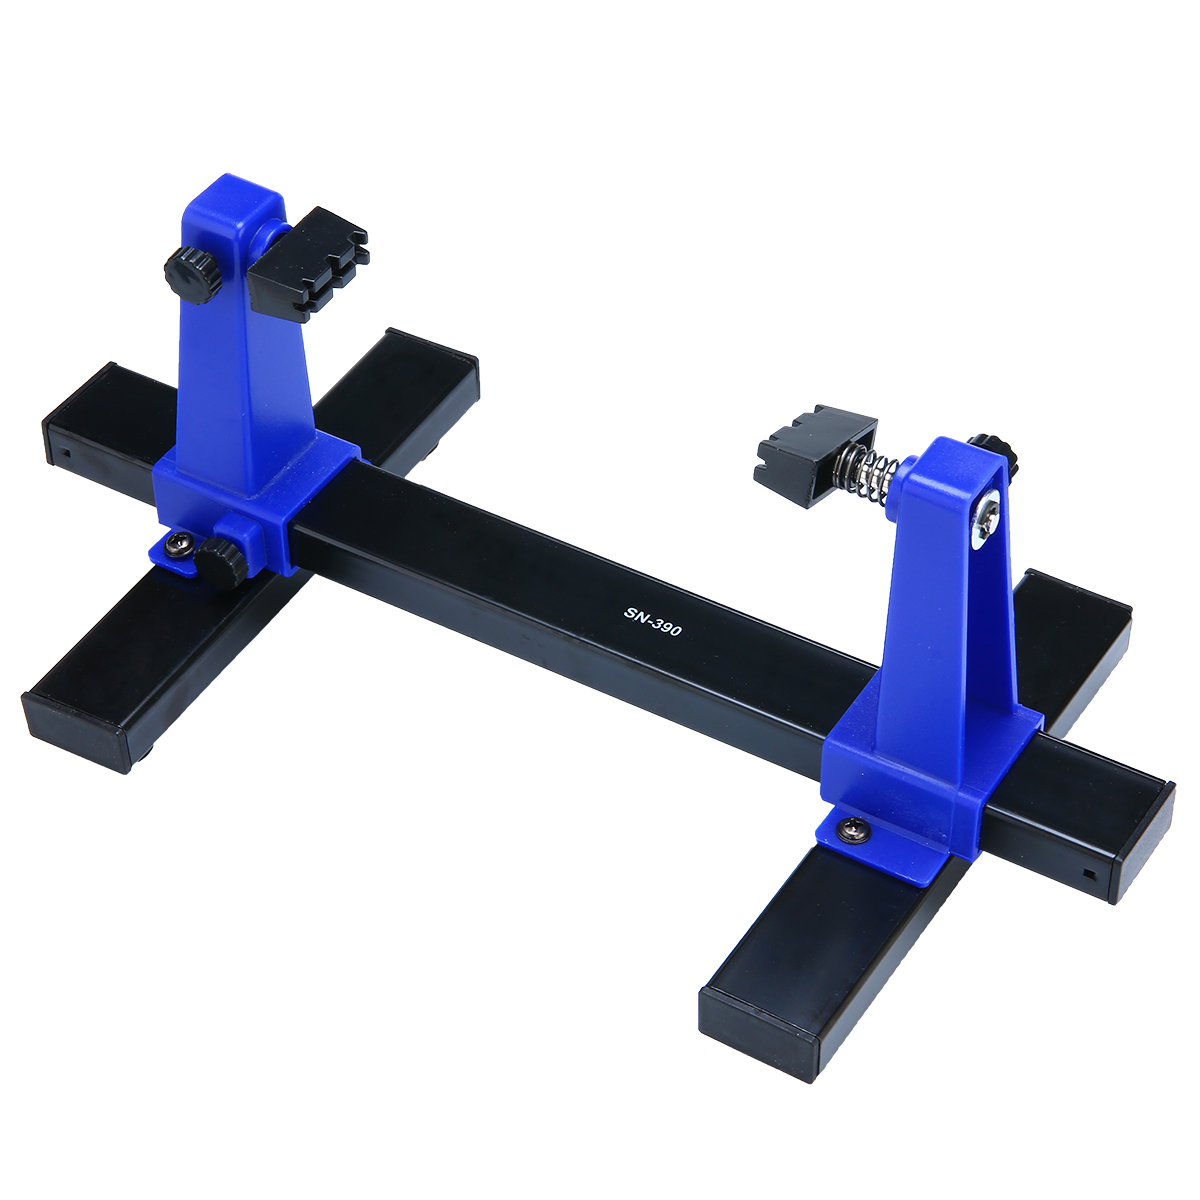 Adjustable PCB Holder Assist Clamp Printed Circuit Board 360 Degree Rotation Soldering Stand Clamp Assembly Fixture Jig Tools